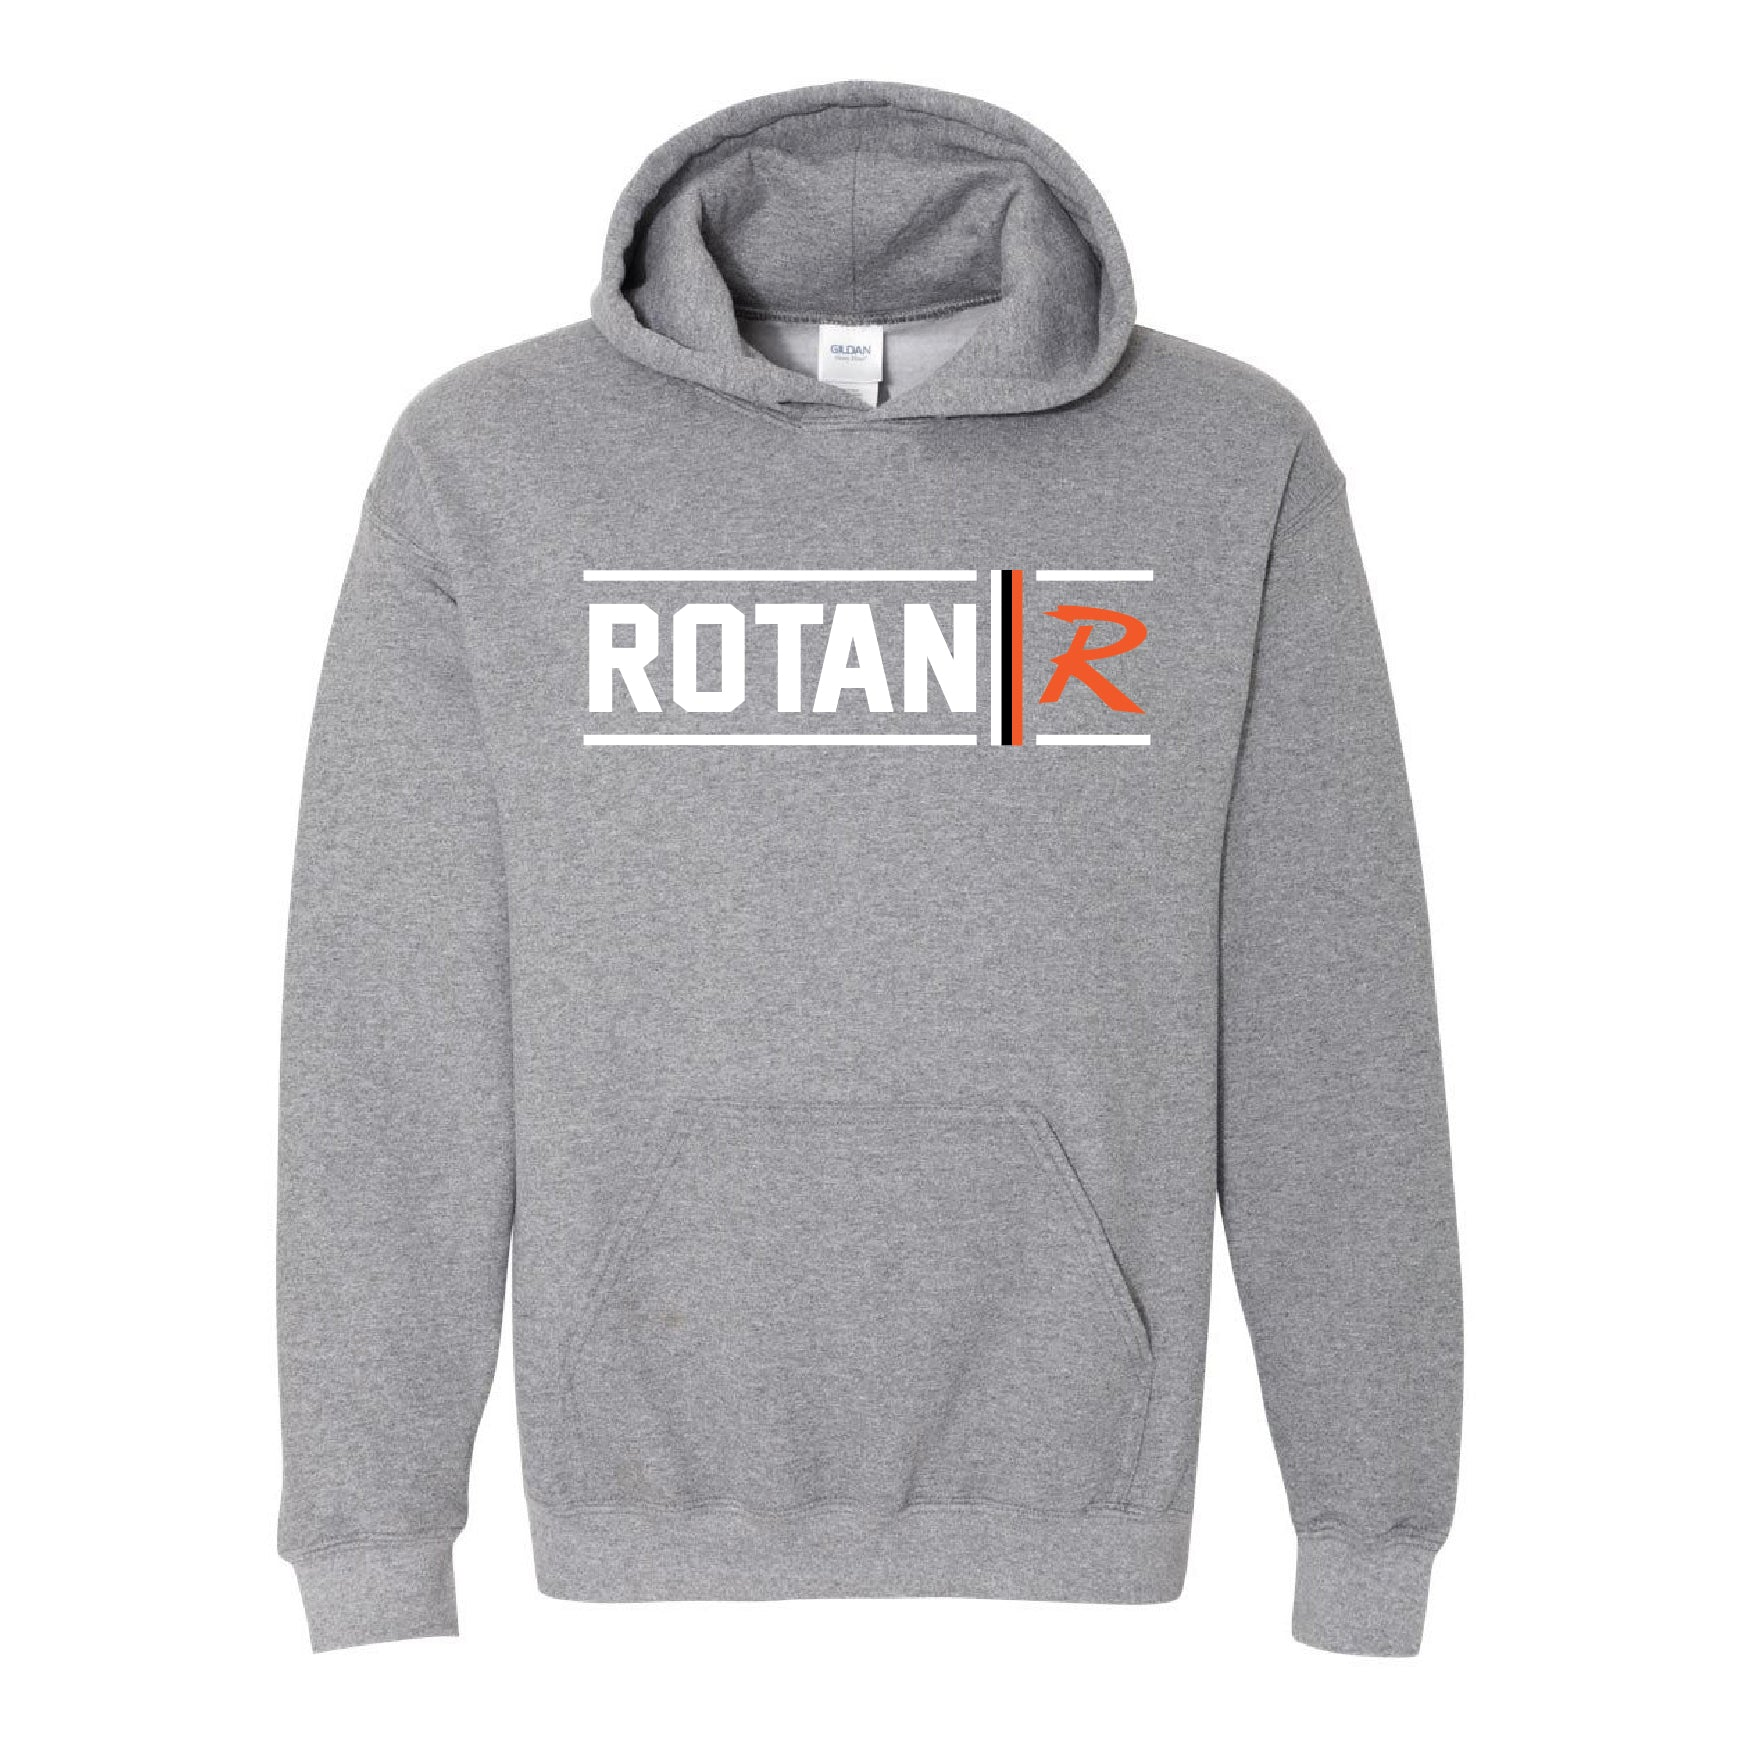 Rotan Yellowhammers - Simple Stripe Hoodie